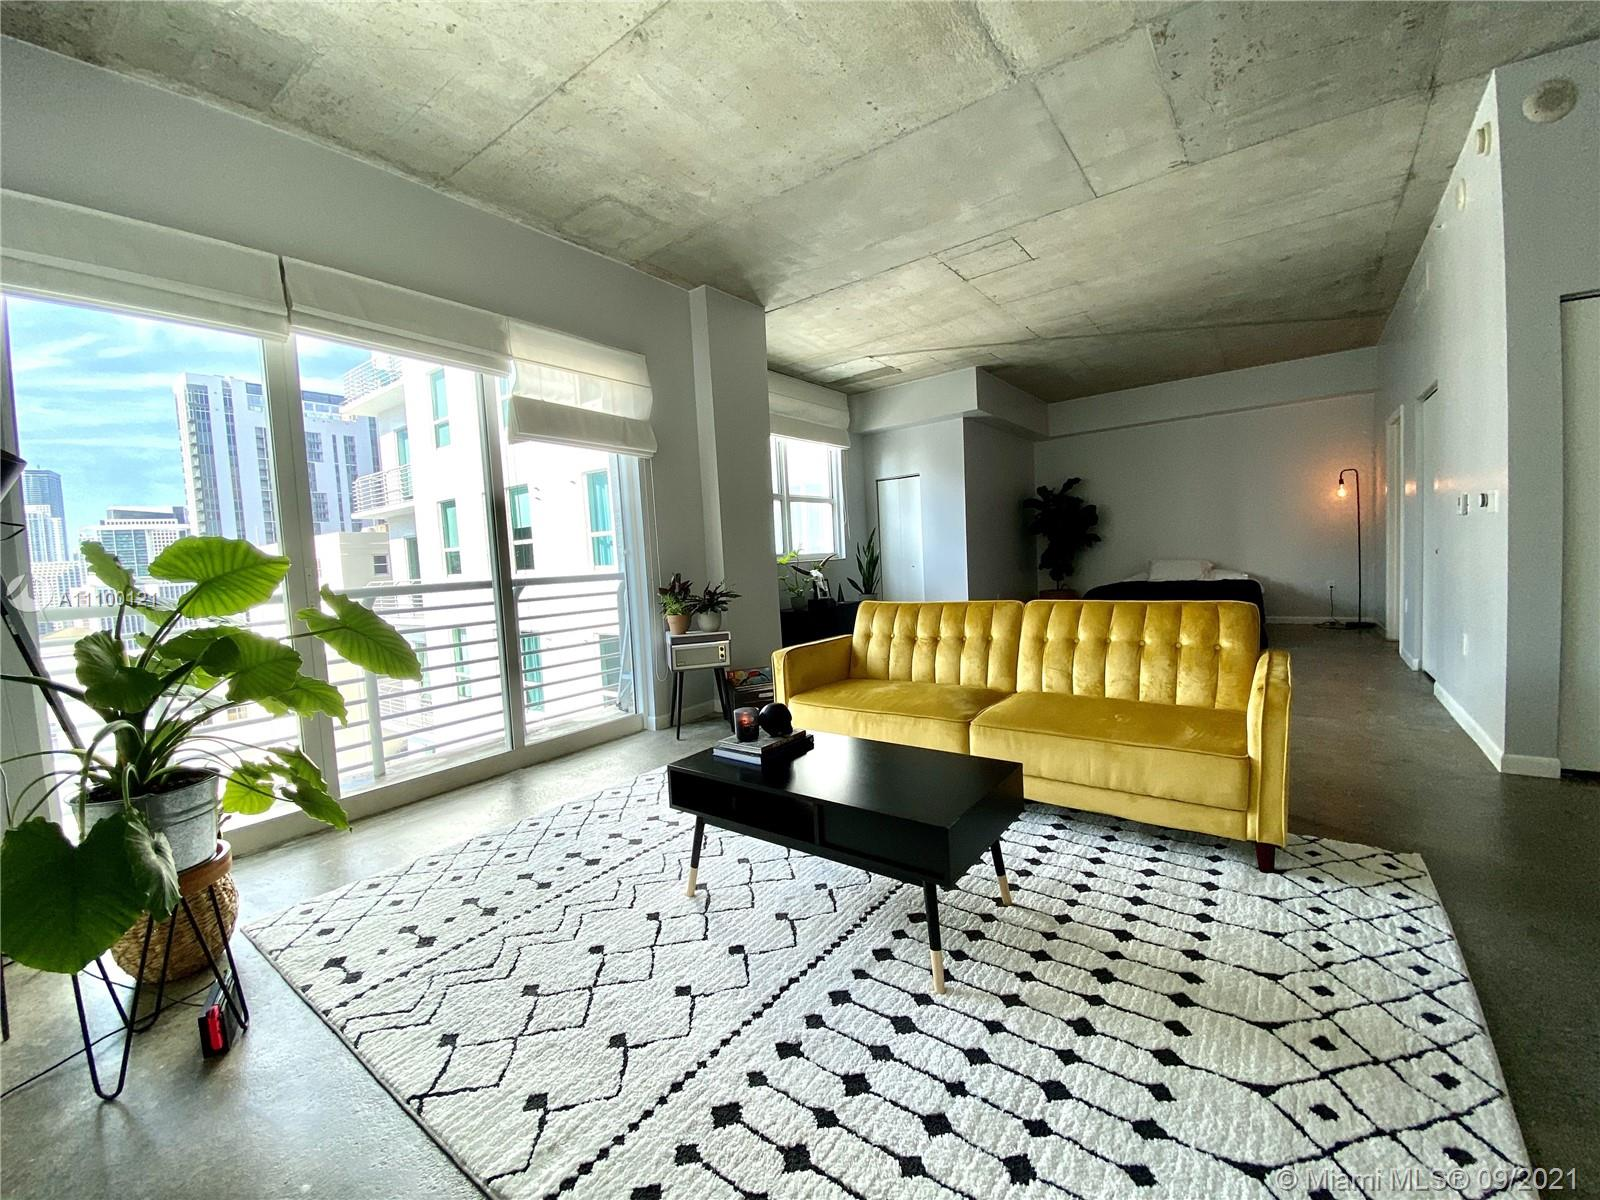 Beautiful spacious 1 bedroom loft. Perfect for an executive or professional. Concrete floors, exposed concrete ceilings, balcony overlooking city/ bay, modern kitchen with s/s appliances. Building offers great entertainment room, penthouse gym, great lap pool in garden, and Metro rail stop right downstairs. Building is a few blocks away from PAMM, Bayside, WholeFoods and movie theater. Largest 1 bedroom loft line in building and large walking closet. The Garage parking is across the street from the building for only $60 /month. Easy access to metro-mover, AAA arena, Miami-Dade College Bayfront Park, & More! No Pets! See attachment for applications!